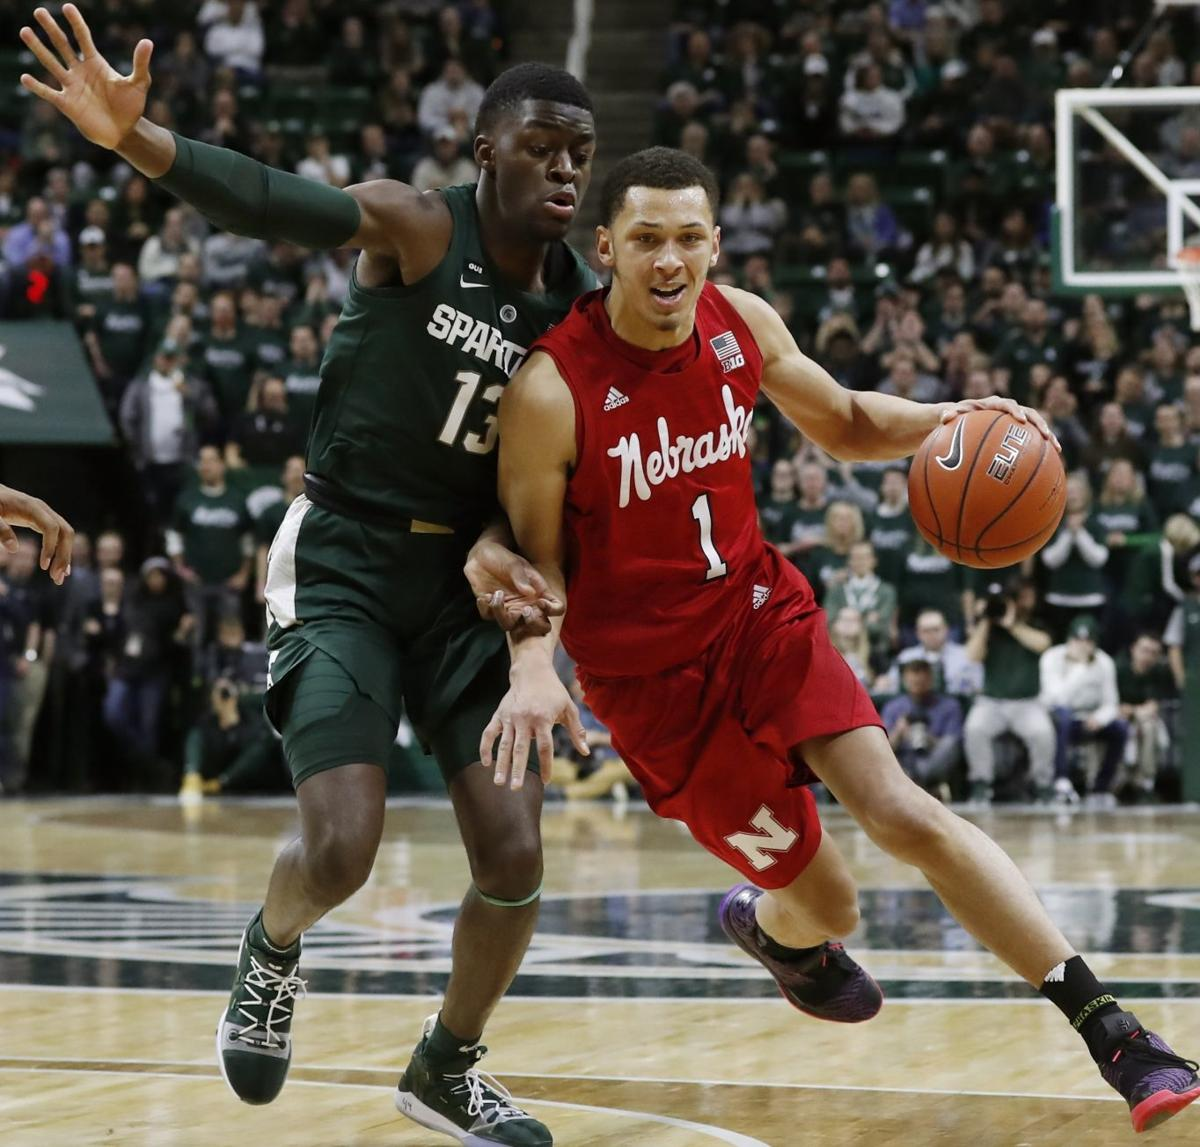 Nebraska Michigan St Basketball